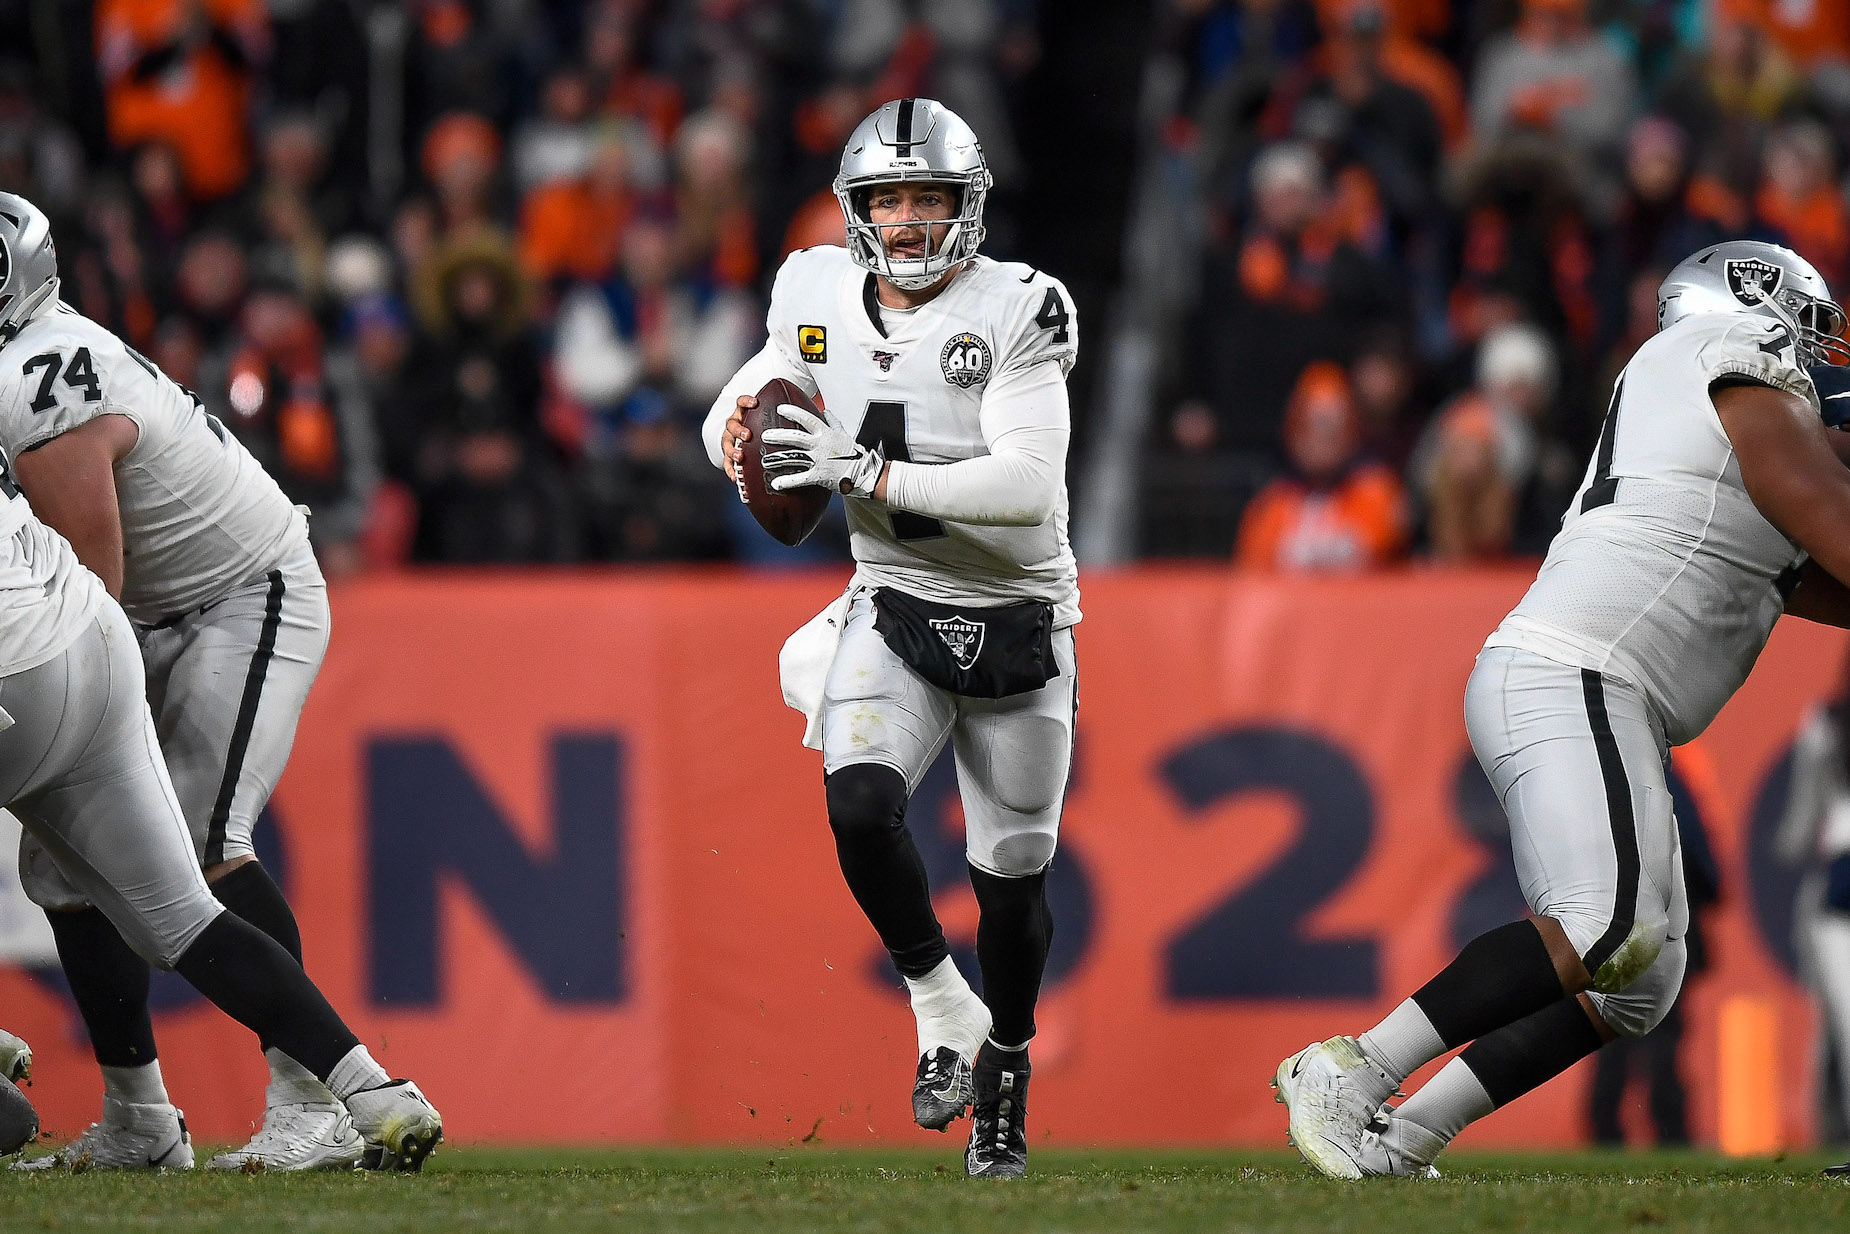 Derek Carr won't opt-out of the 2020 season because he wants to prove his haters wrong.